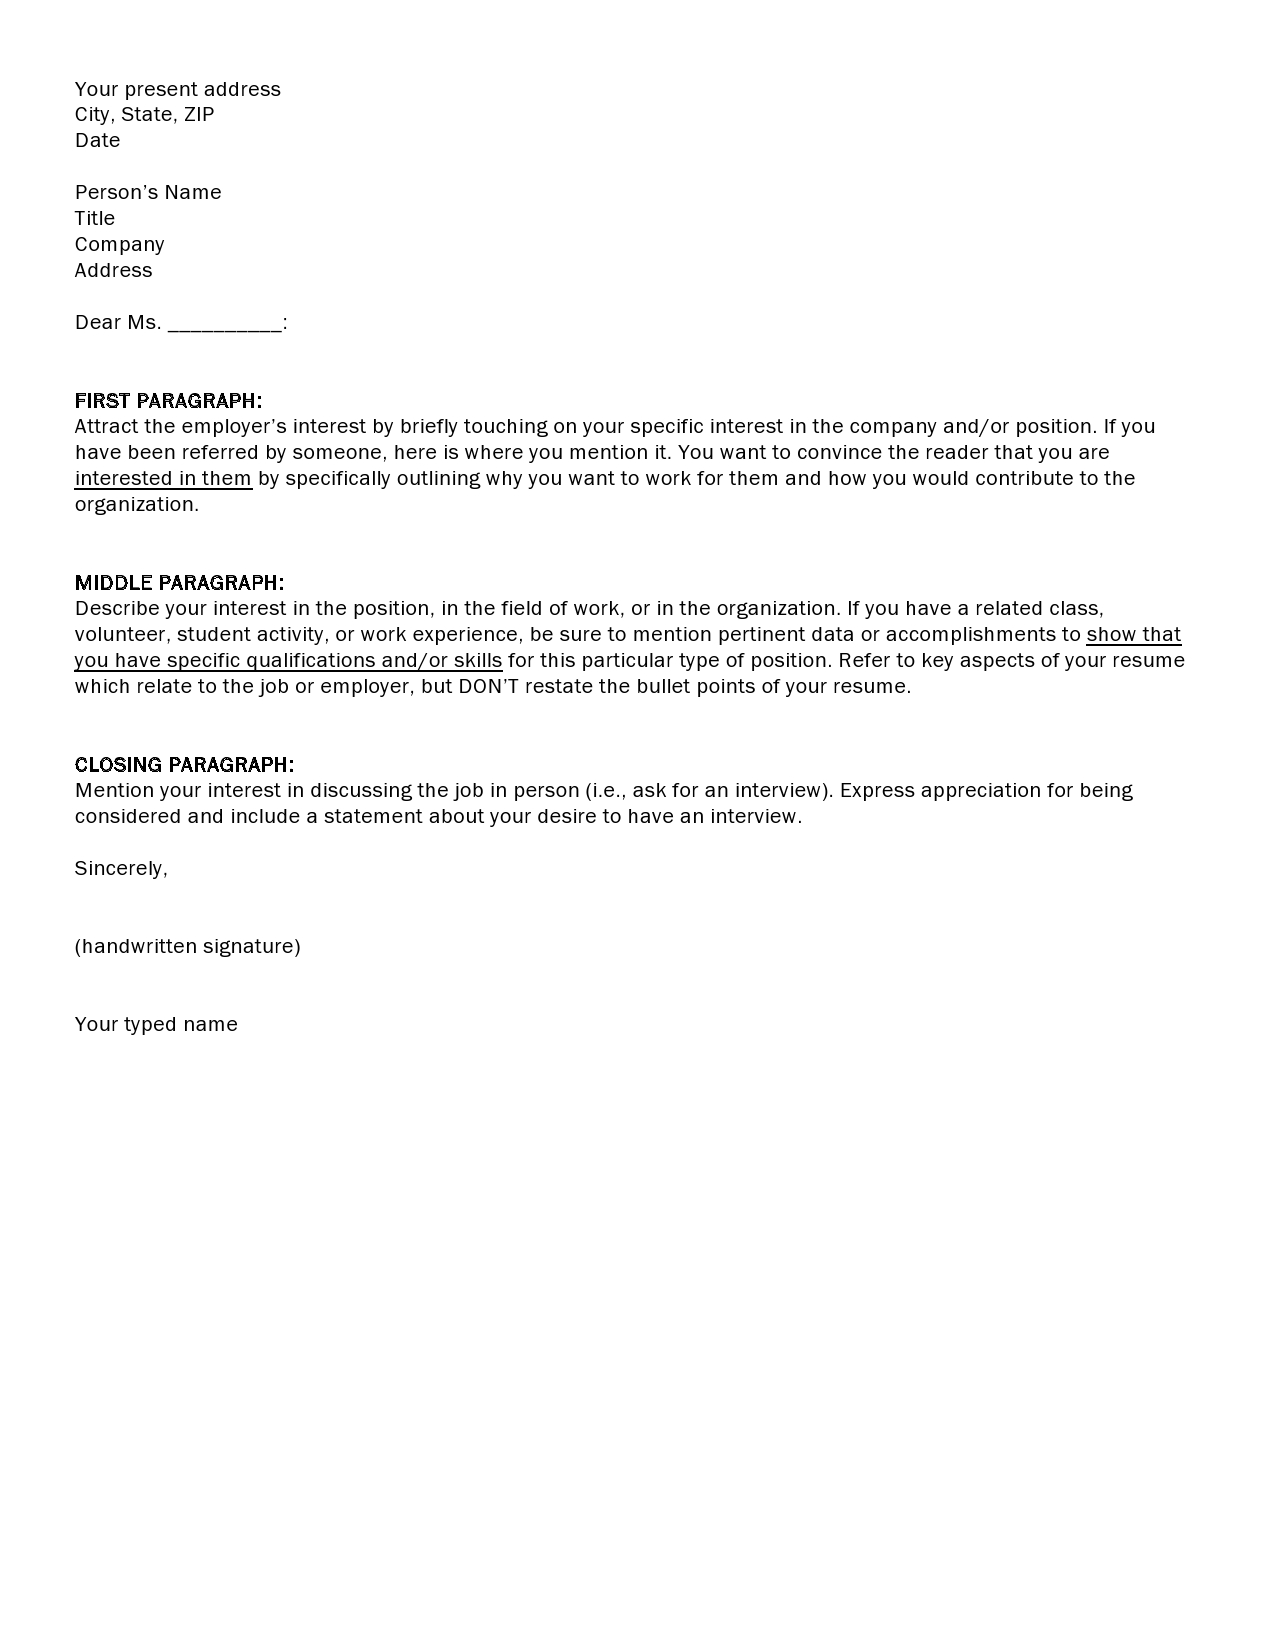 Cover letter format careerconnections smeal college of business madrichimfo Gallery